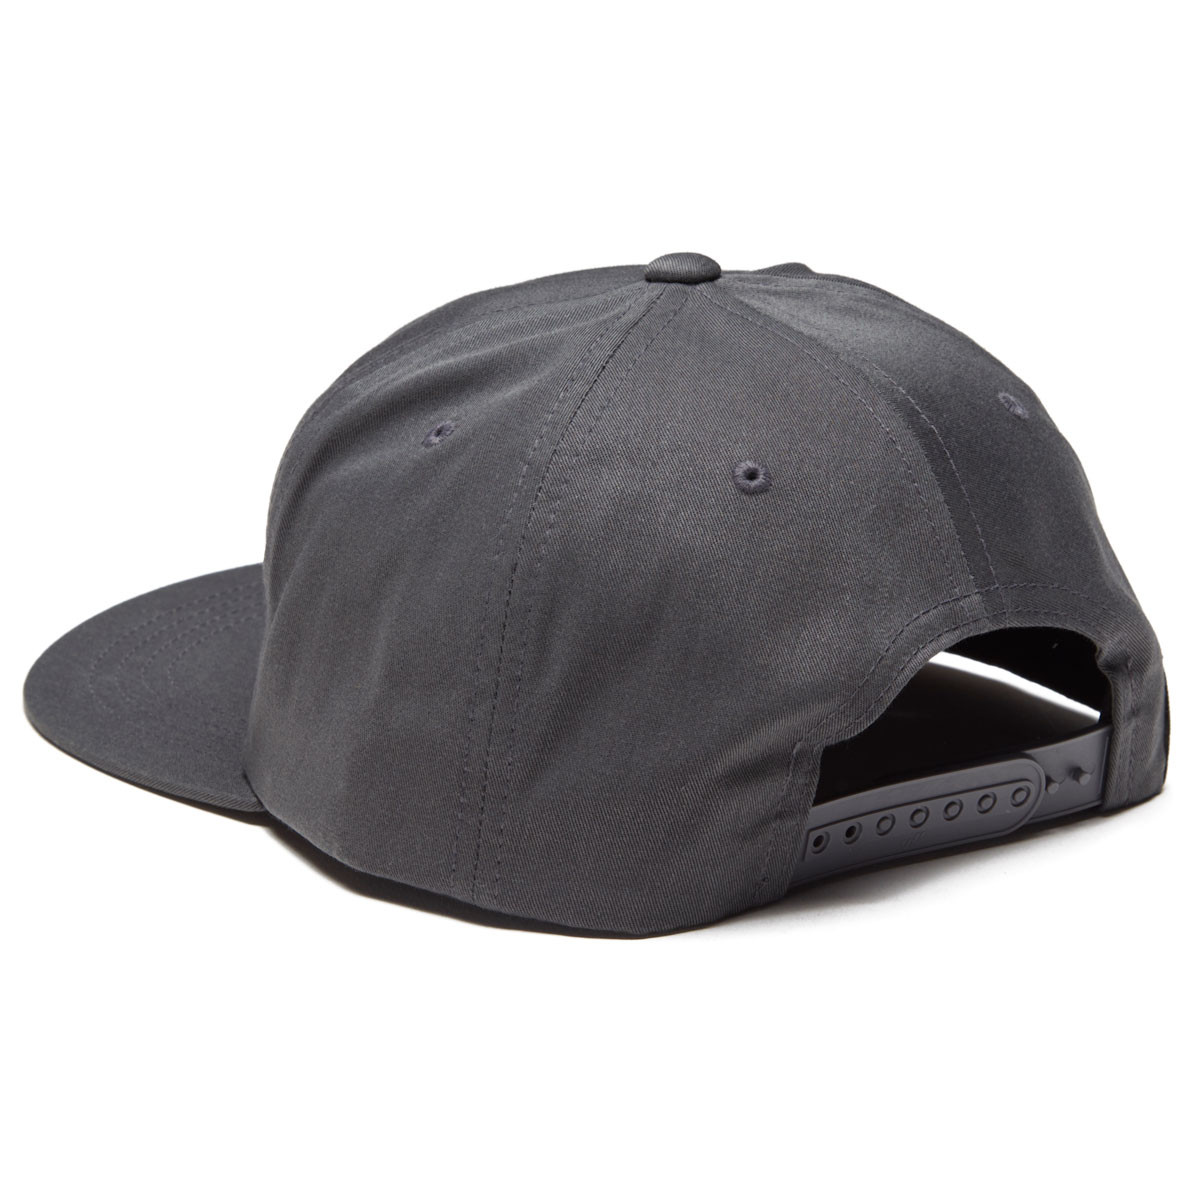 low priced e64ad 933bc Salty Crew White Wash 5 Panel Hat - Charcoal